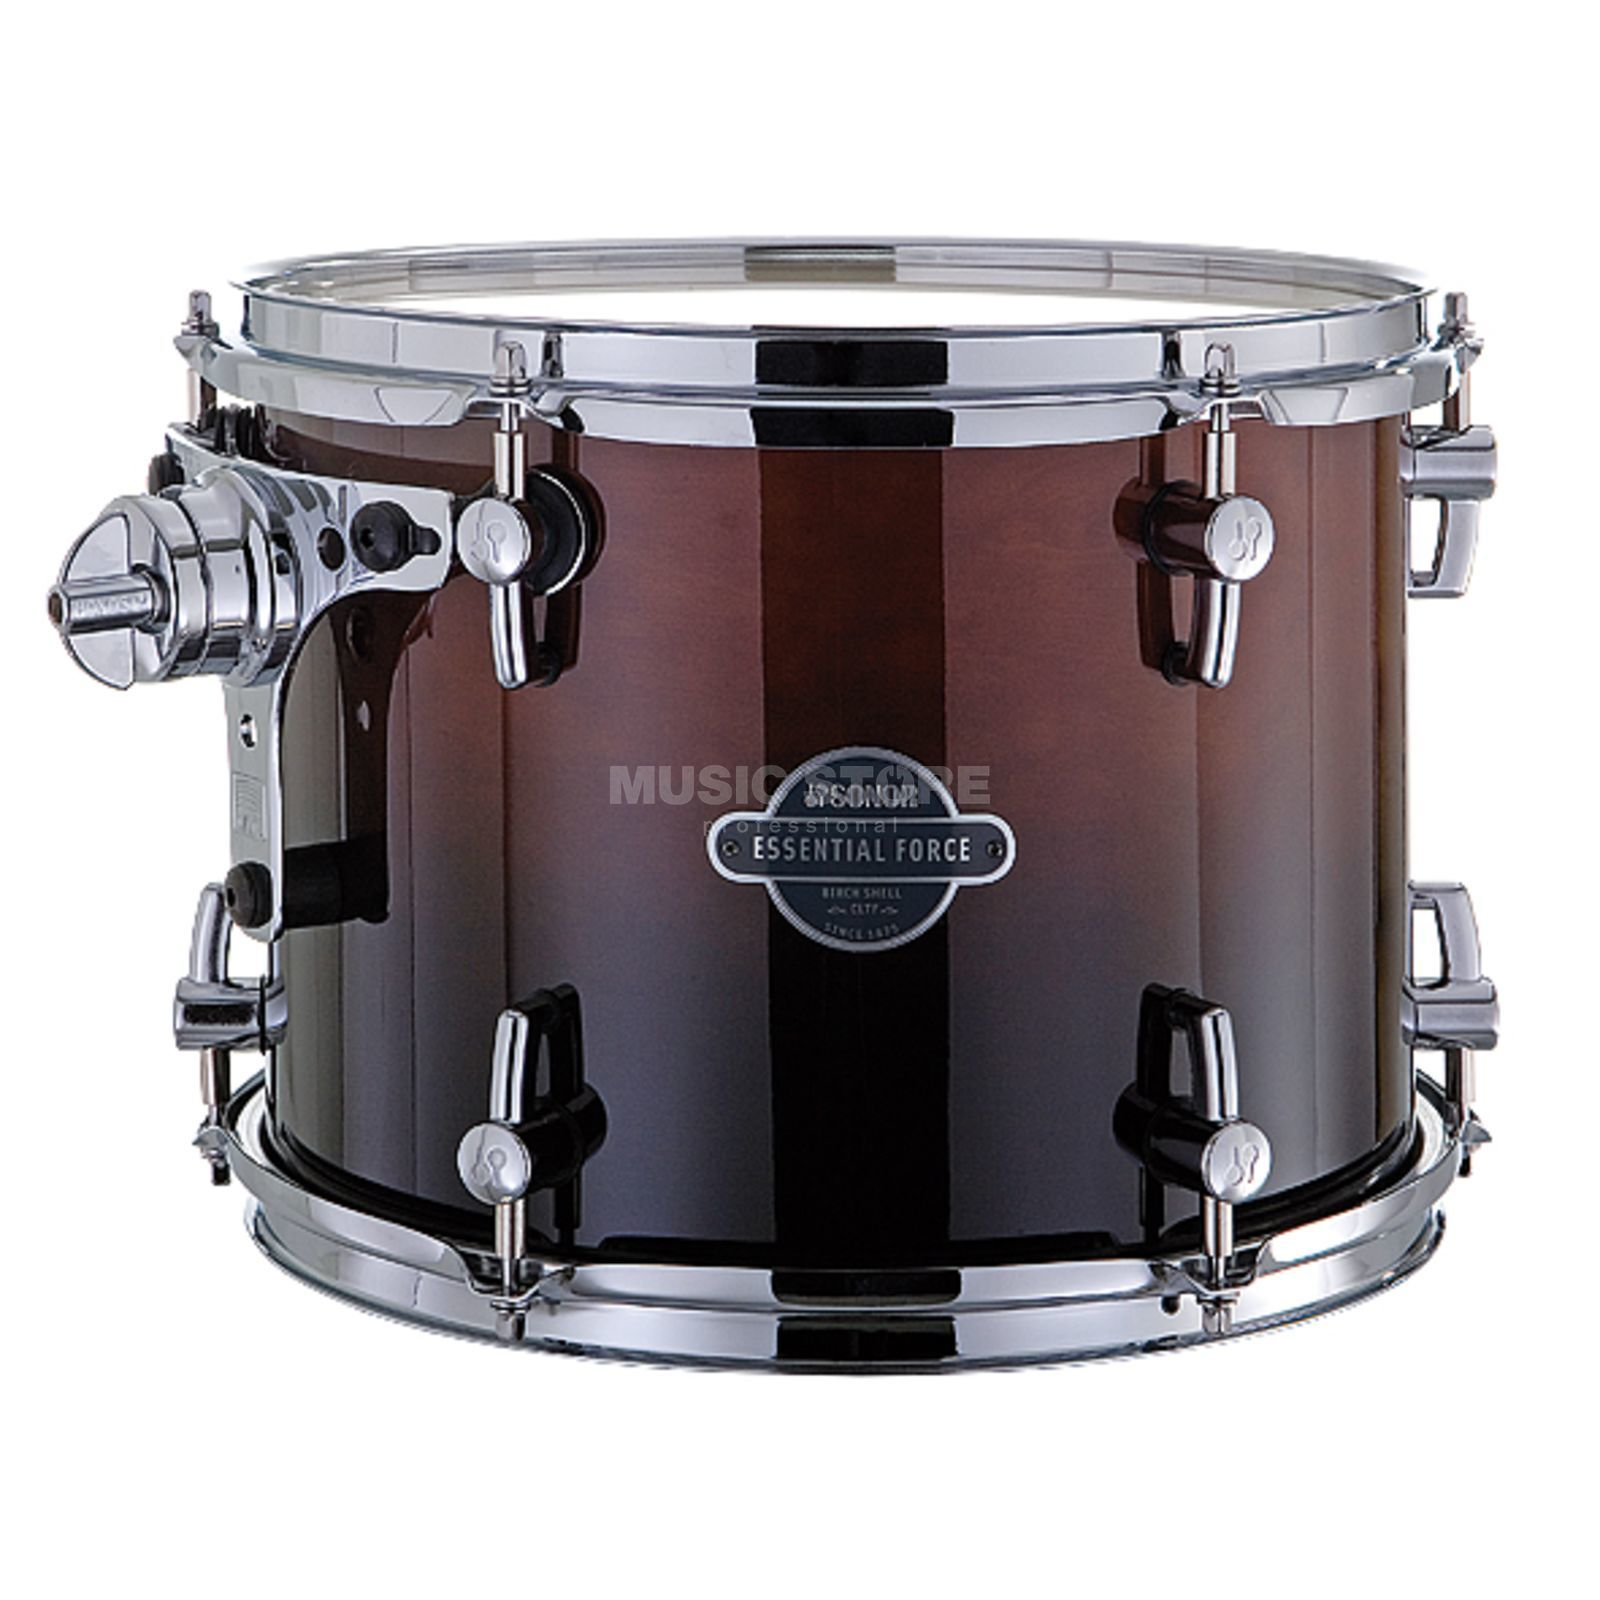 "Sonor Essential Force Tom 13""x10"" Brown Fade Produktbild"